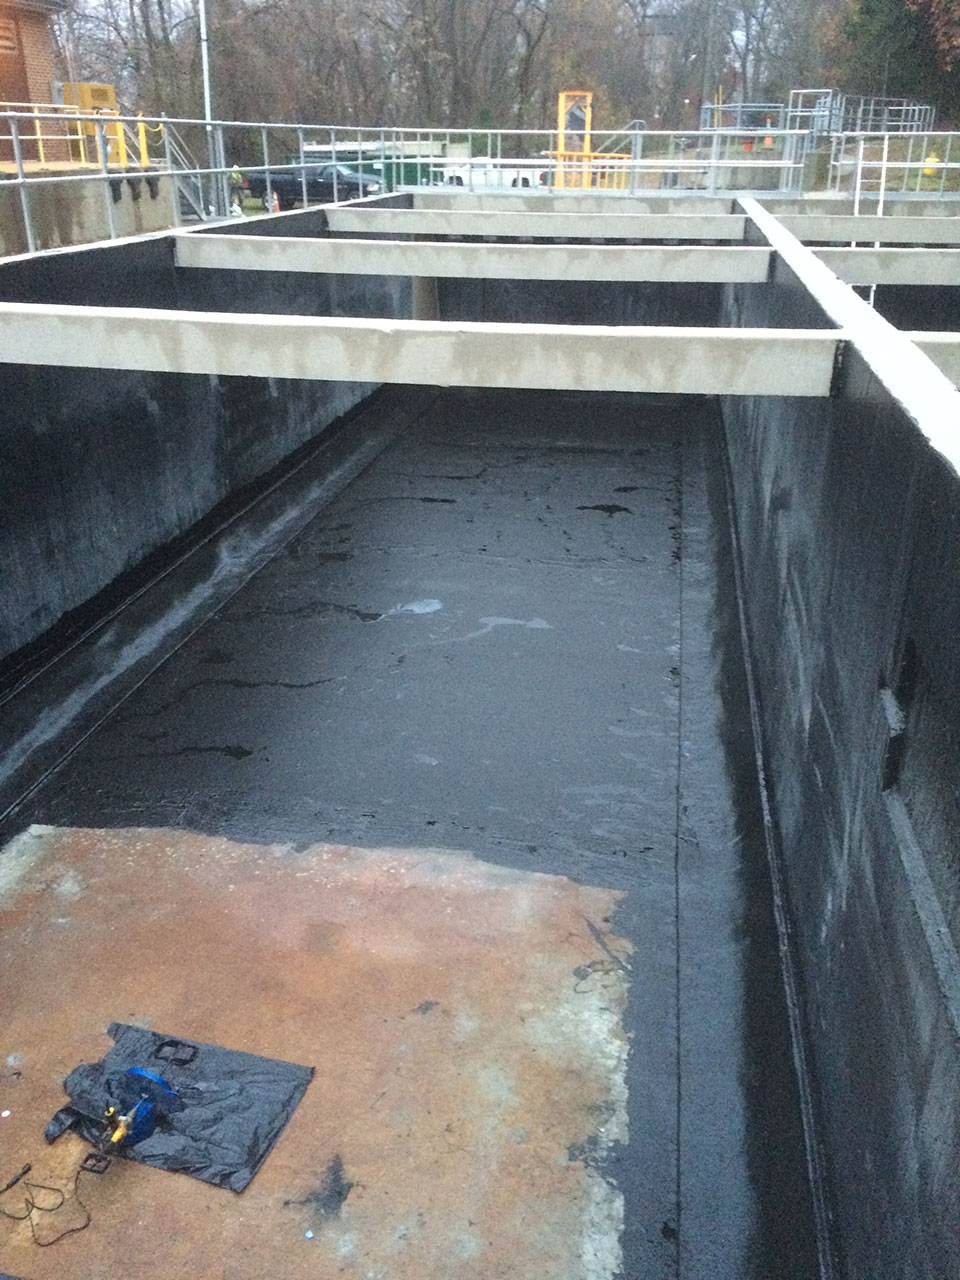 high performance elastomeric coating to be applied over the floor and wall